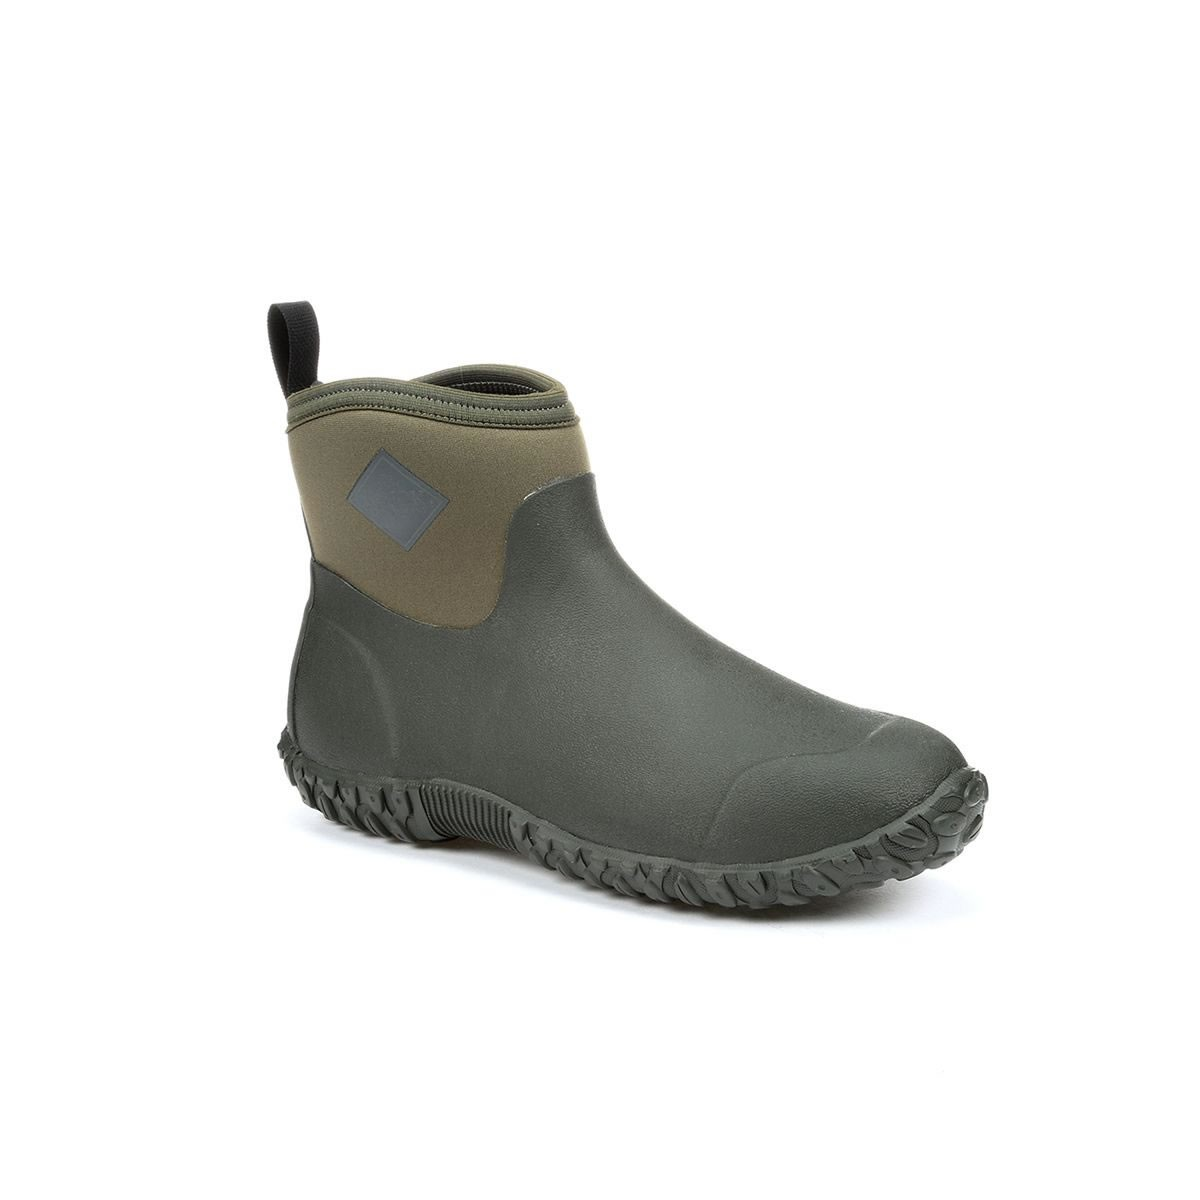 Muck Boot Mens Muckster Ankle Moss Size 10 UK